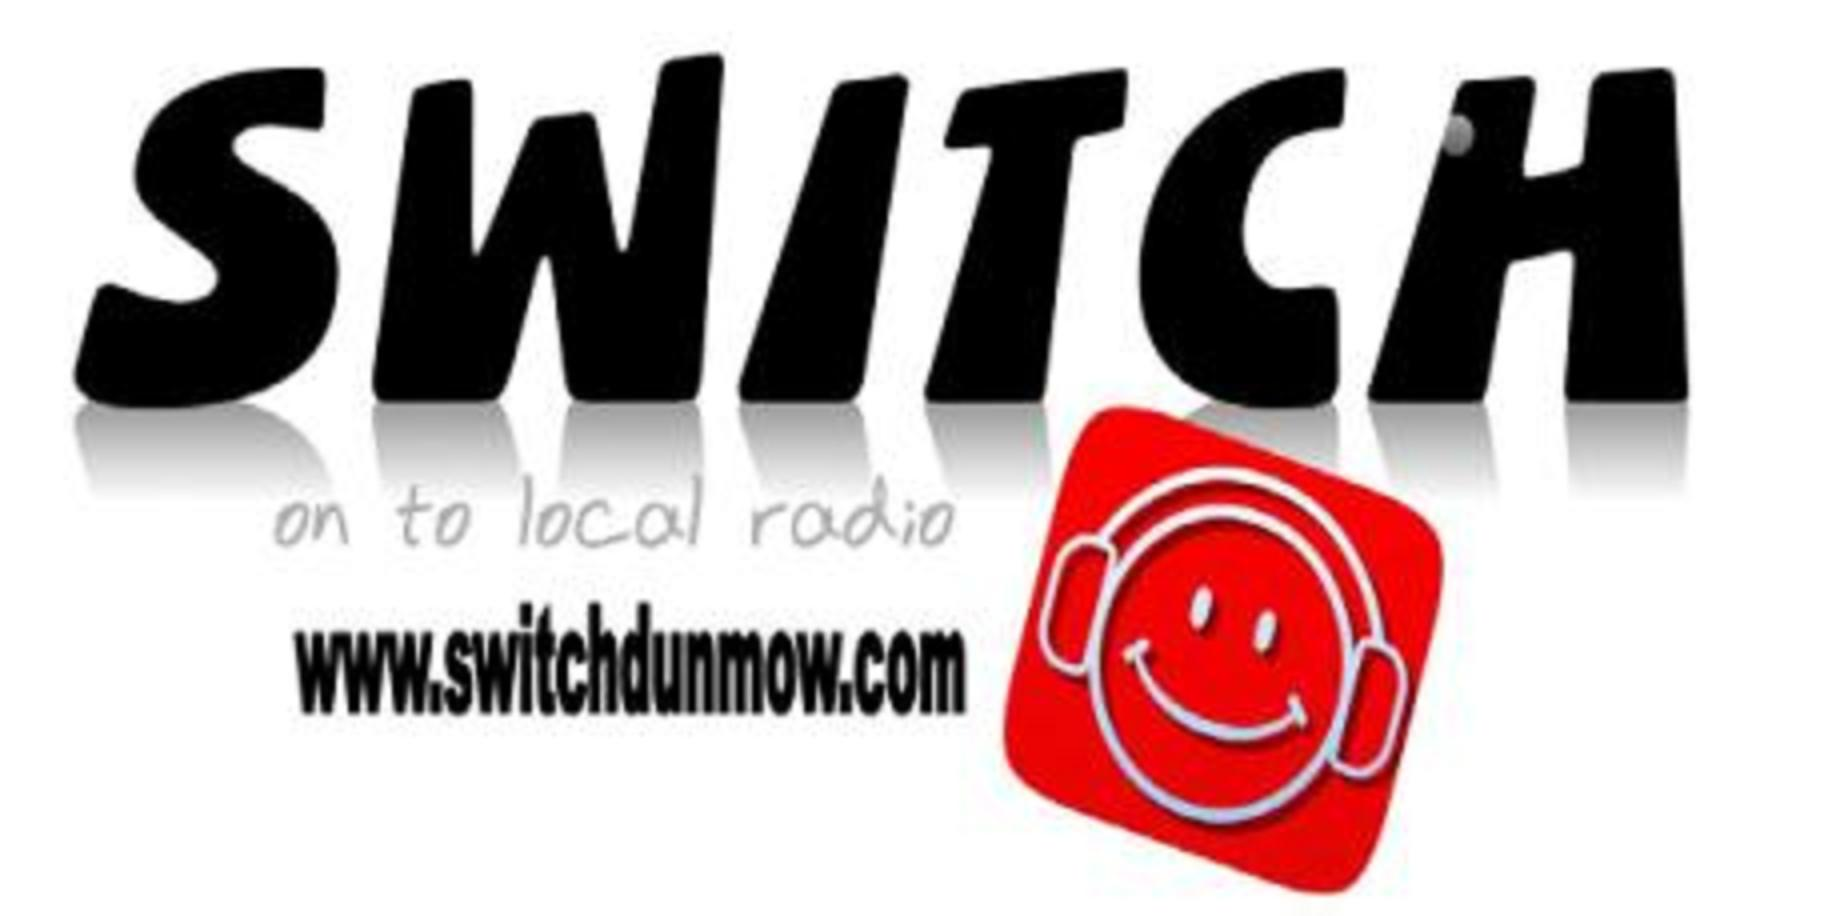 Switch over to new community radio